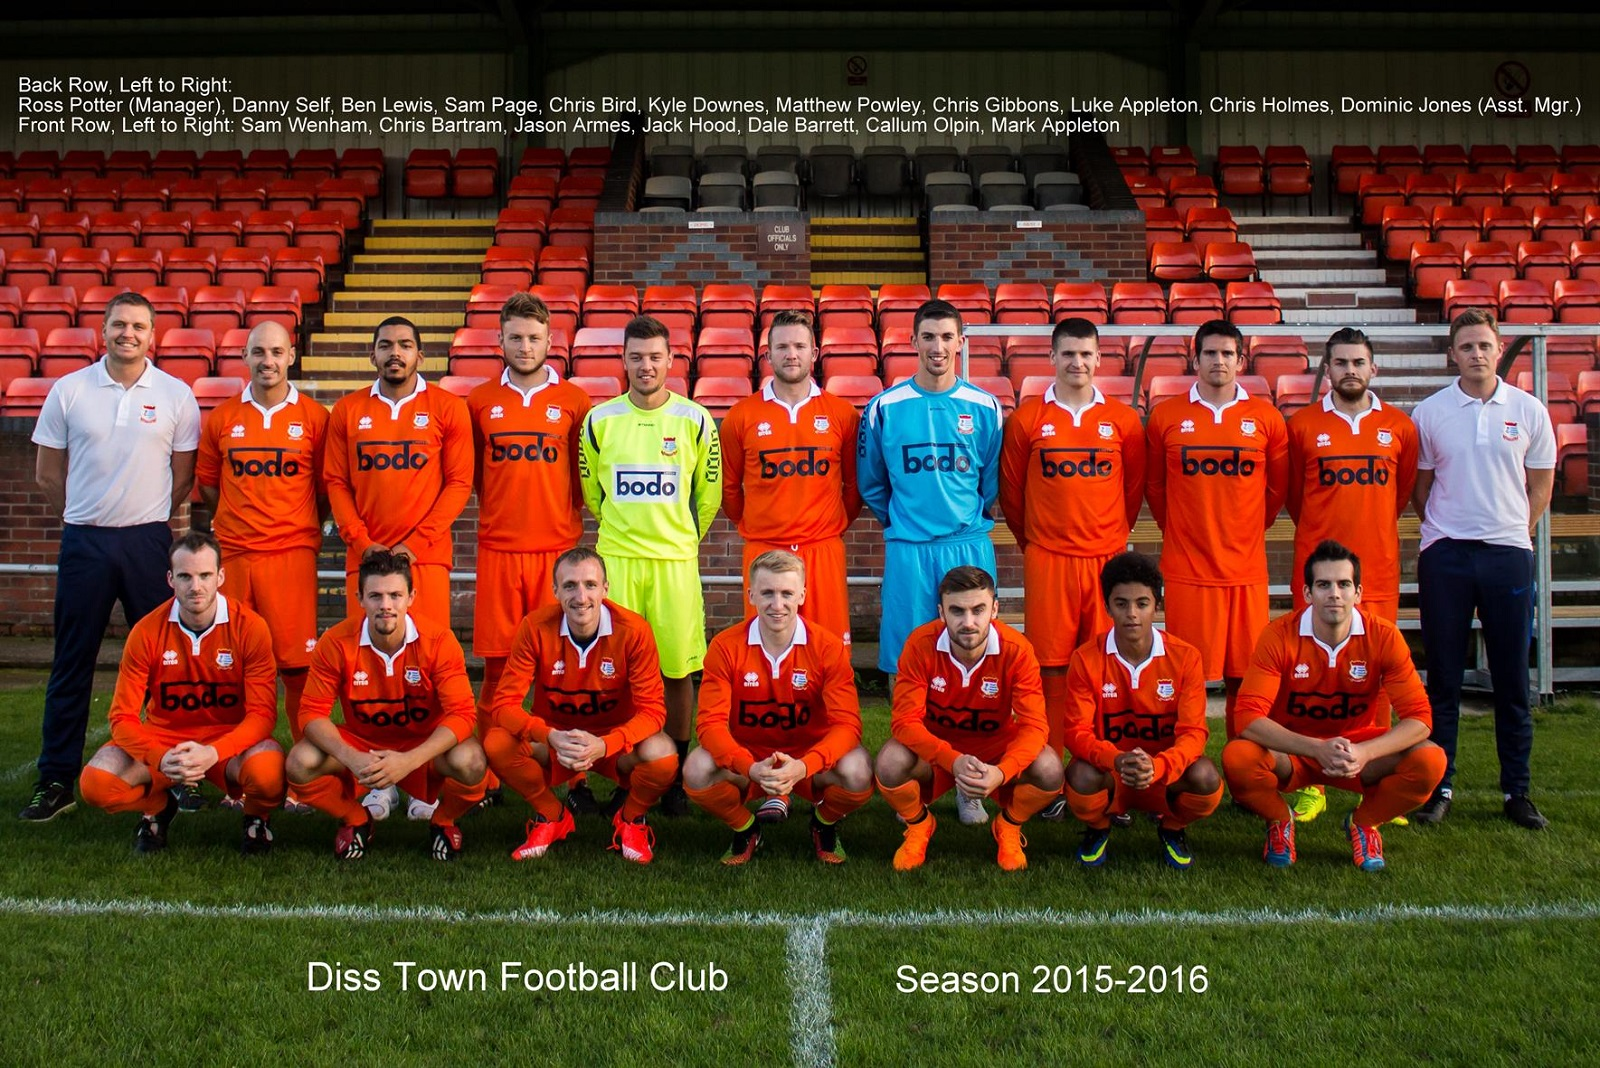 Bodo Ltd are proud to Sponsor Diss Town Football Club